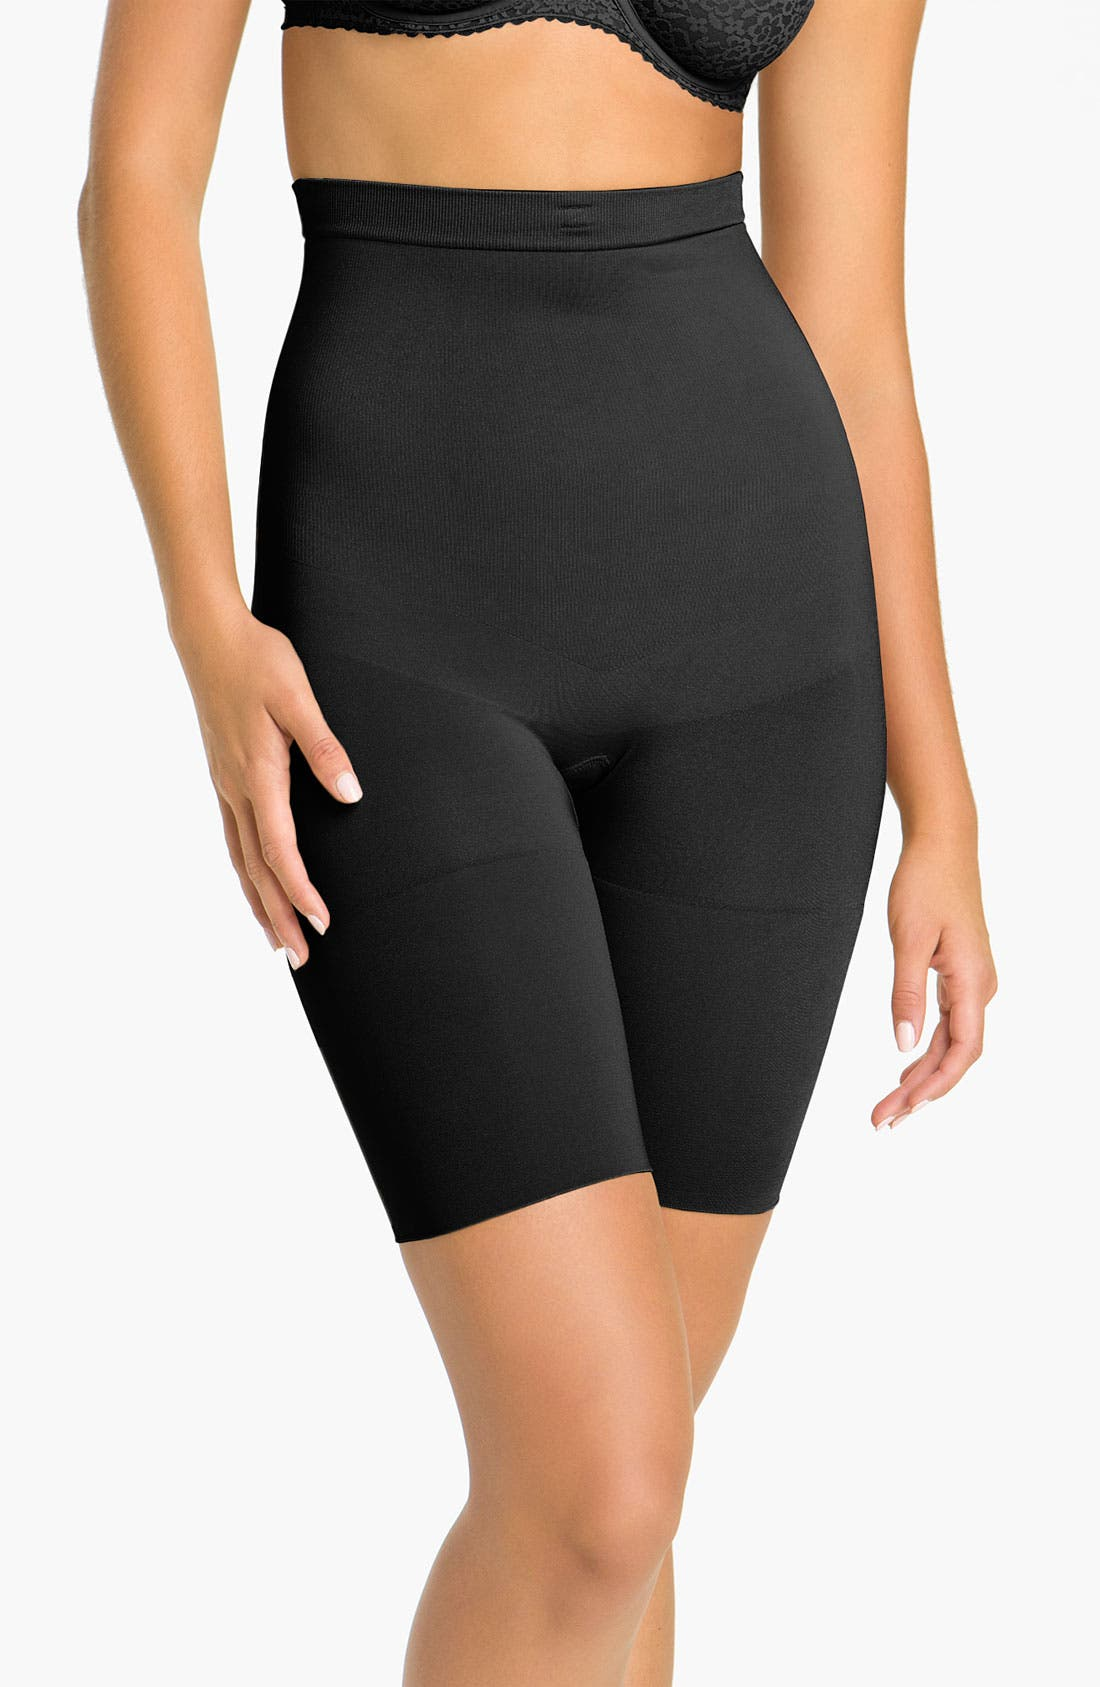 Main Image - SPANX® 'Slim Cognito' Mid-Thigh Bodysuit Shaper